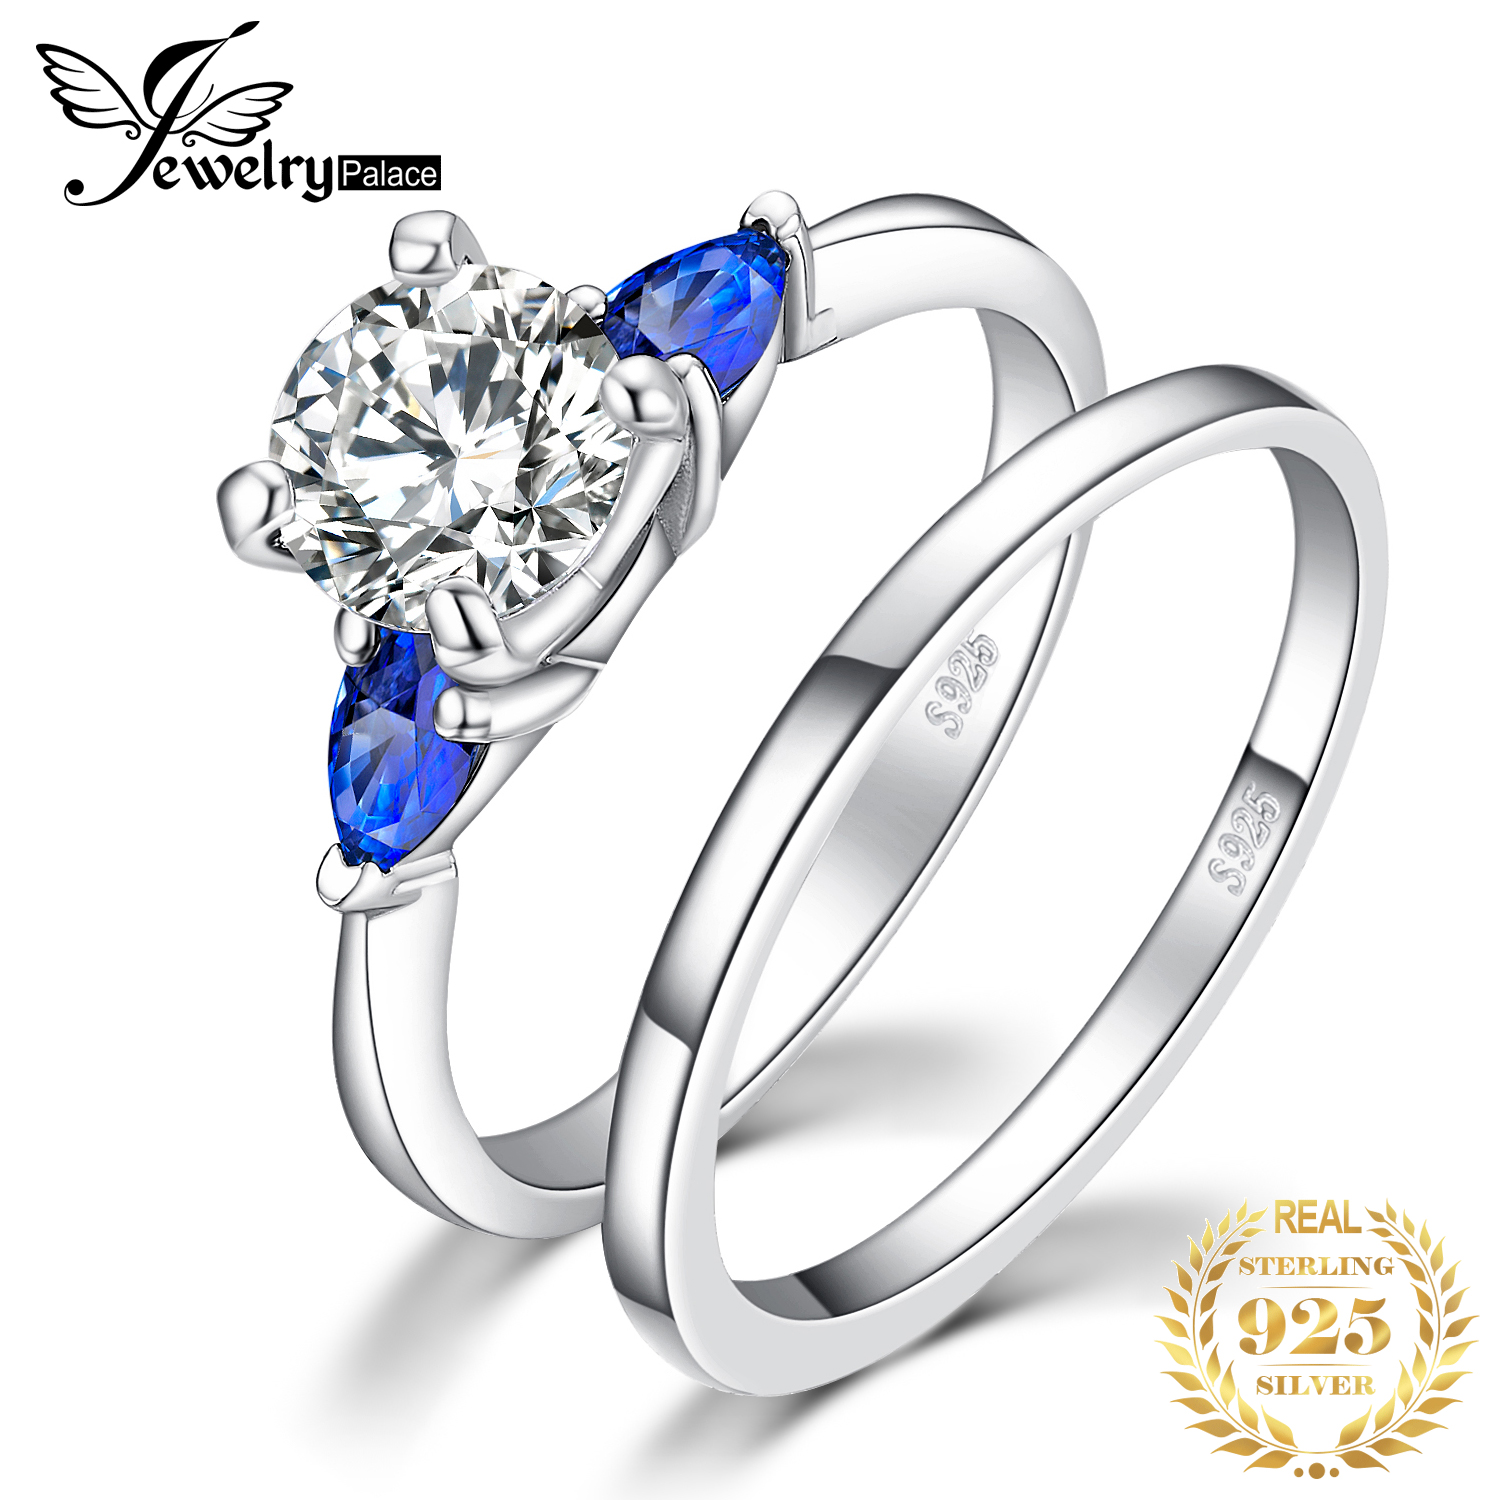 JPalace 3 Stone Created Sapphire Engagement Ring 925 Sterling Silver Rings For Women Wedding Rings Bridal Set Silver 925 Jewelry